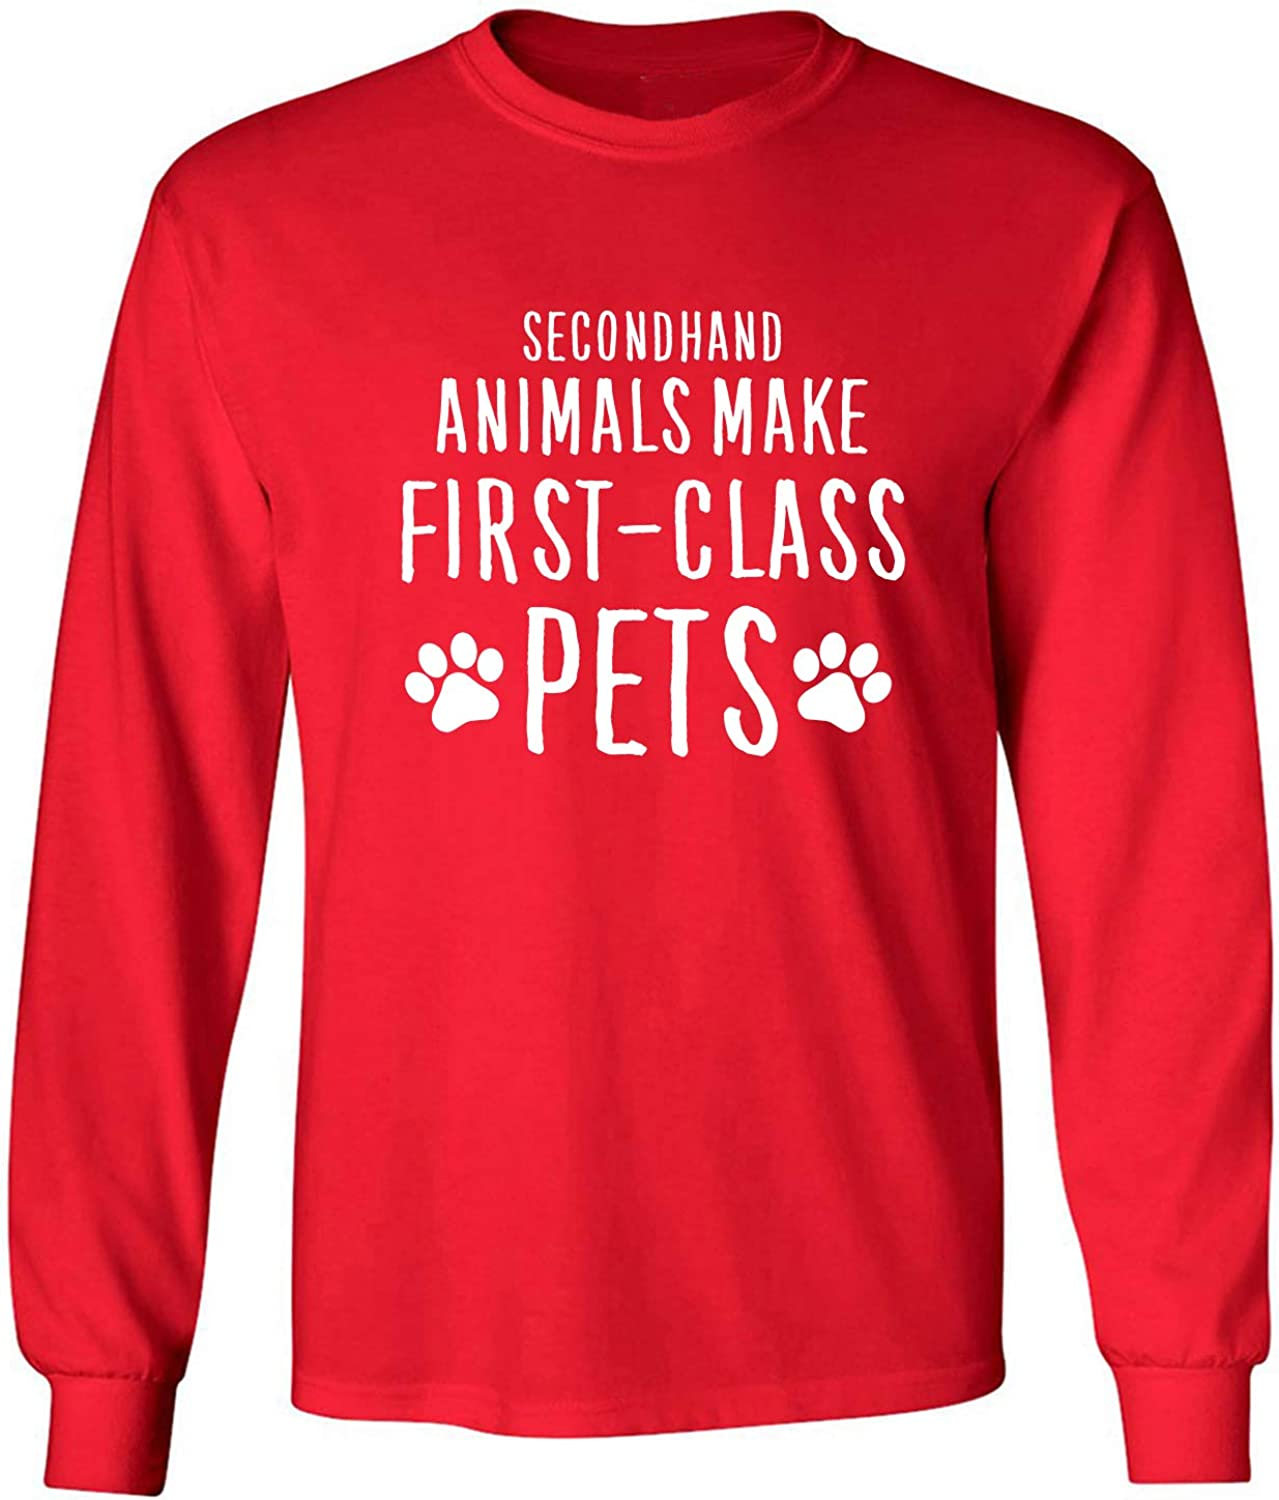 Secondhand Animals Adult Long Sleeve T-Shirt in Red - XXXXX-Large